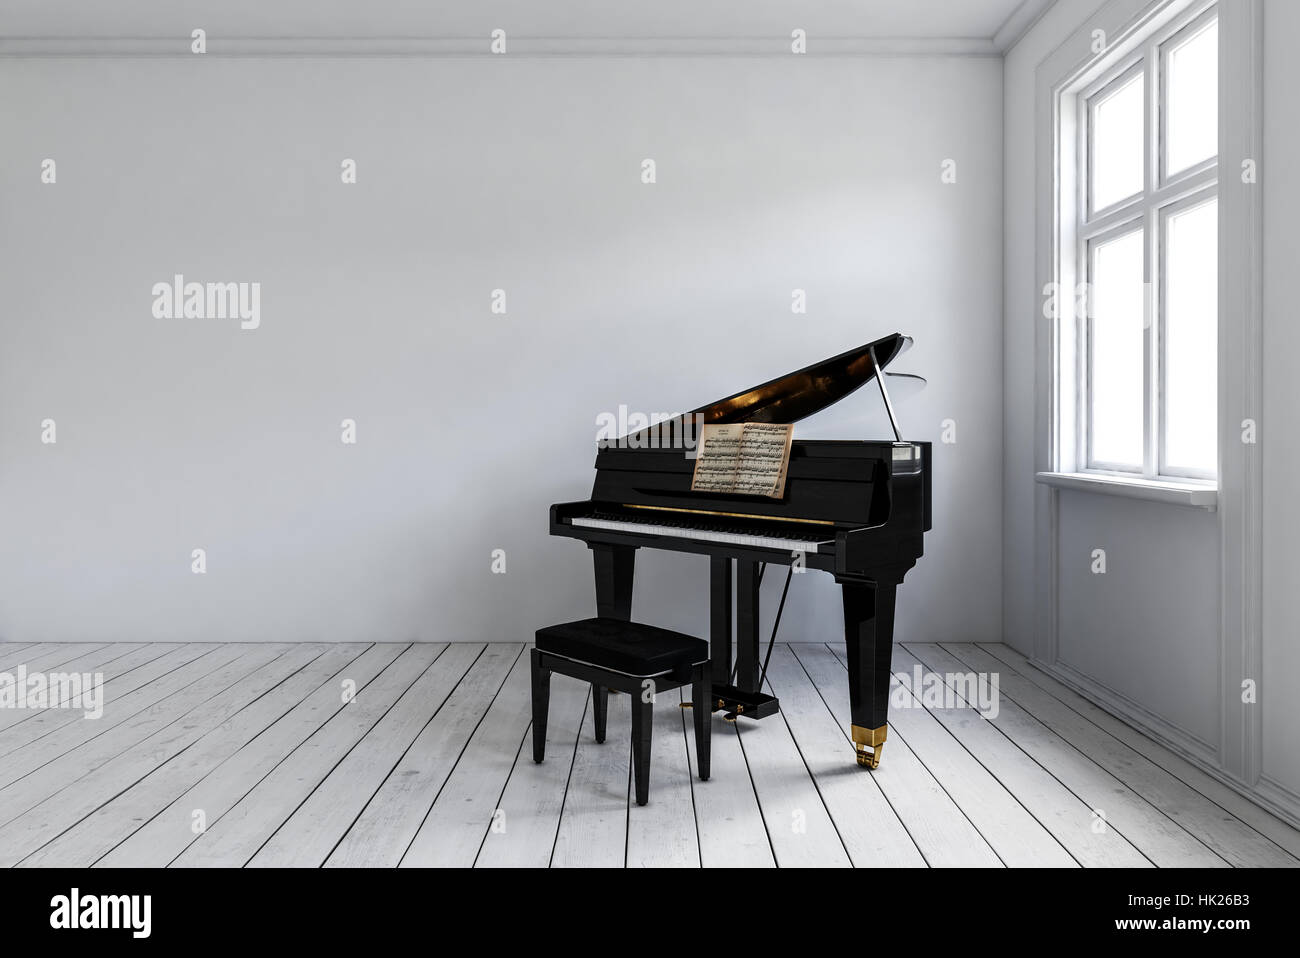 Empty room with chair violin and sheet music on floor photograph - Stock Photo White Room With Black Piano With Chair Standing In Corner Near Bright Window Minimalist Interior Design With Copy Space 3d Rendering